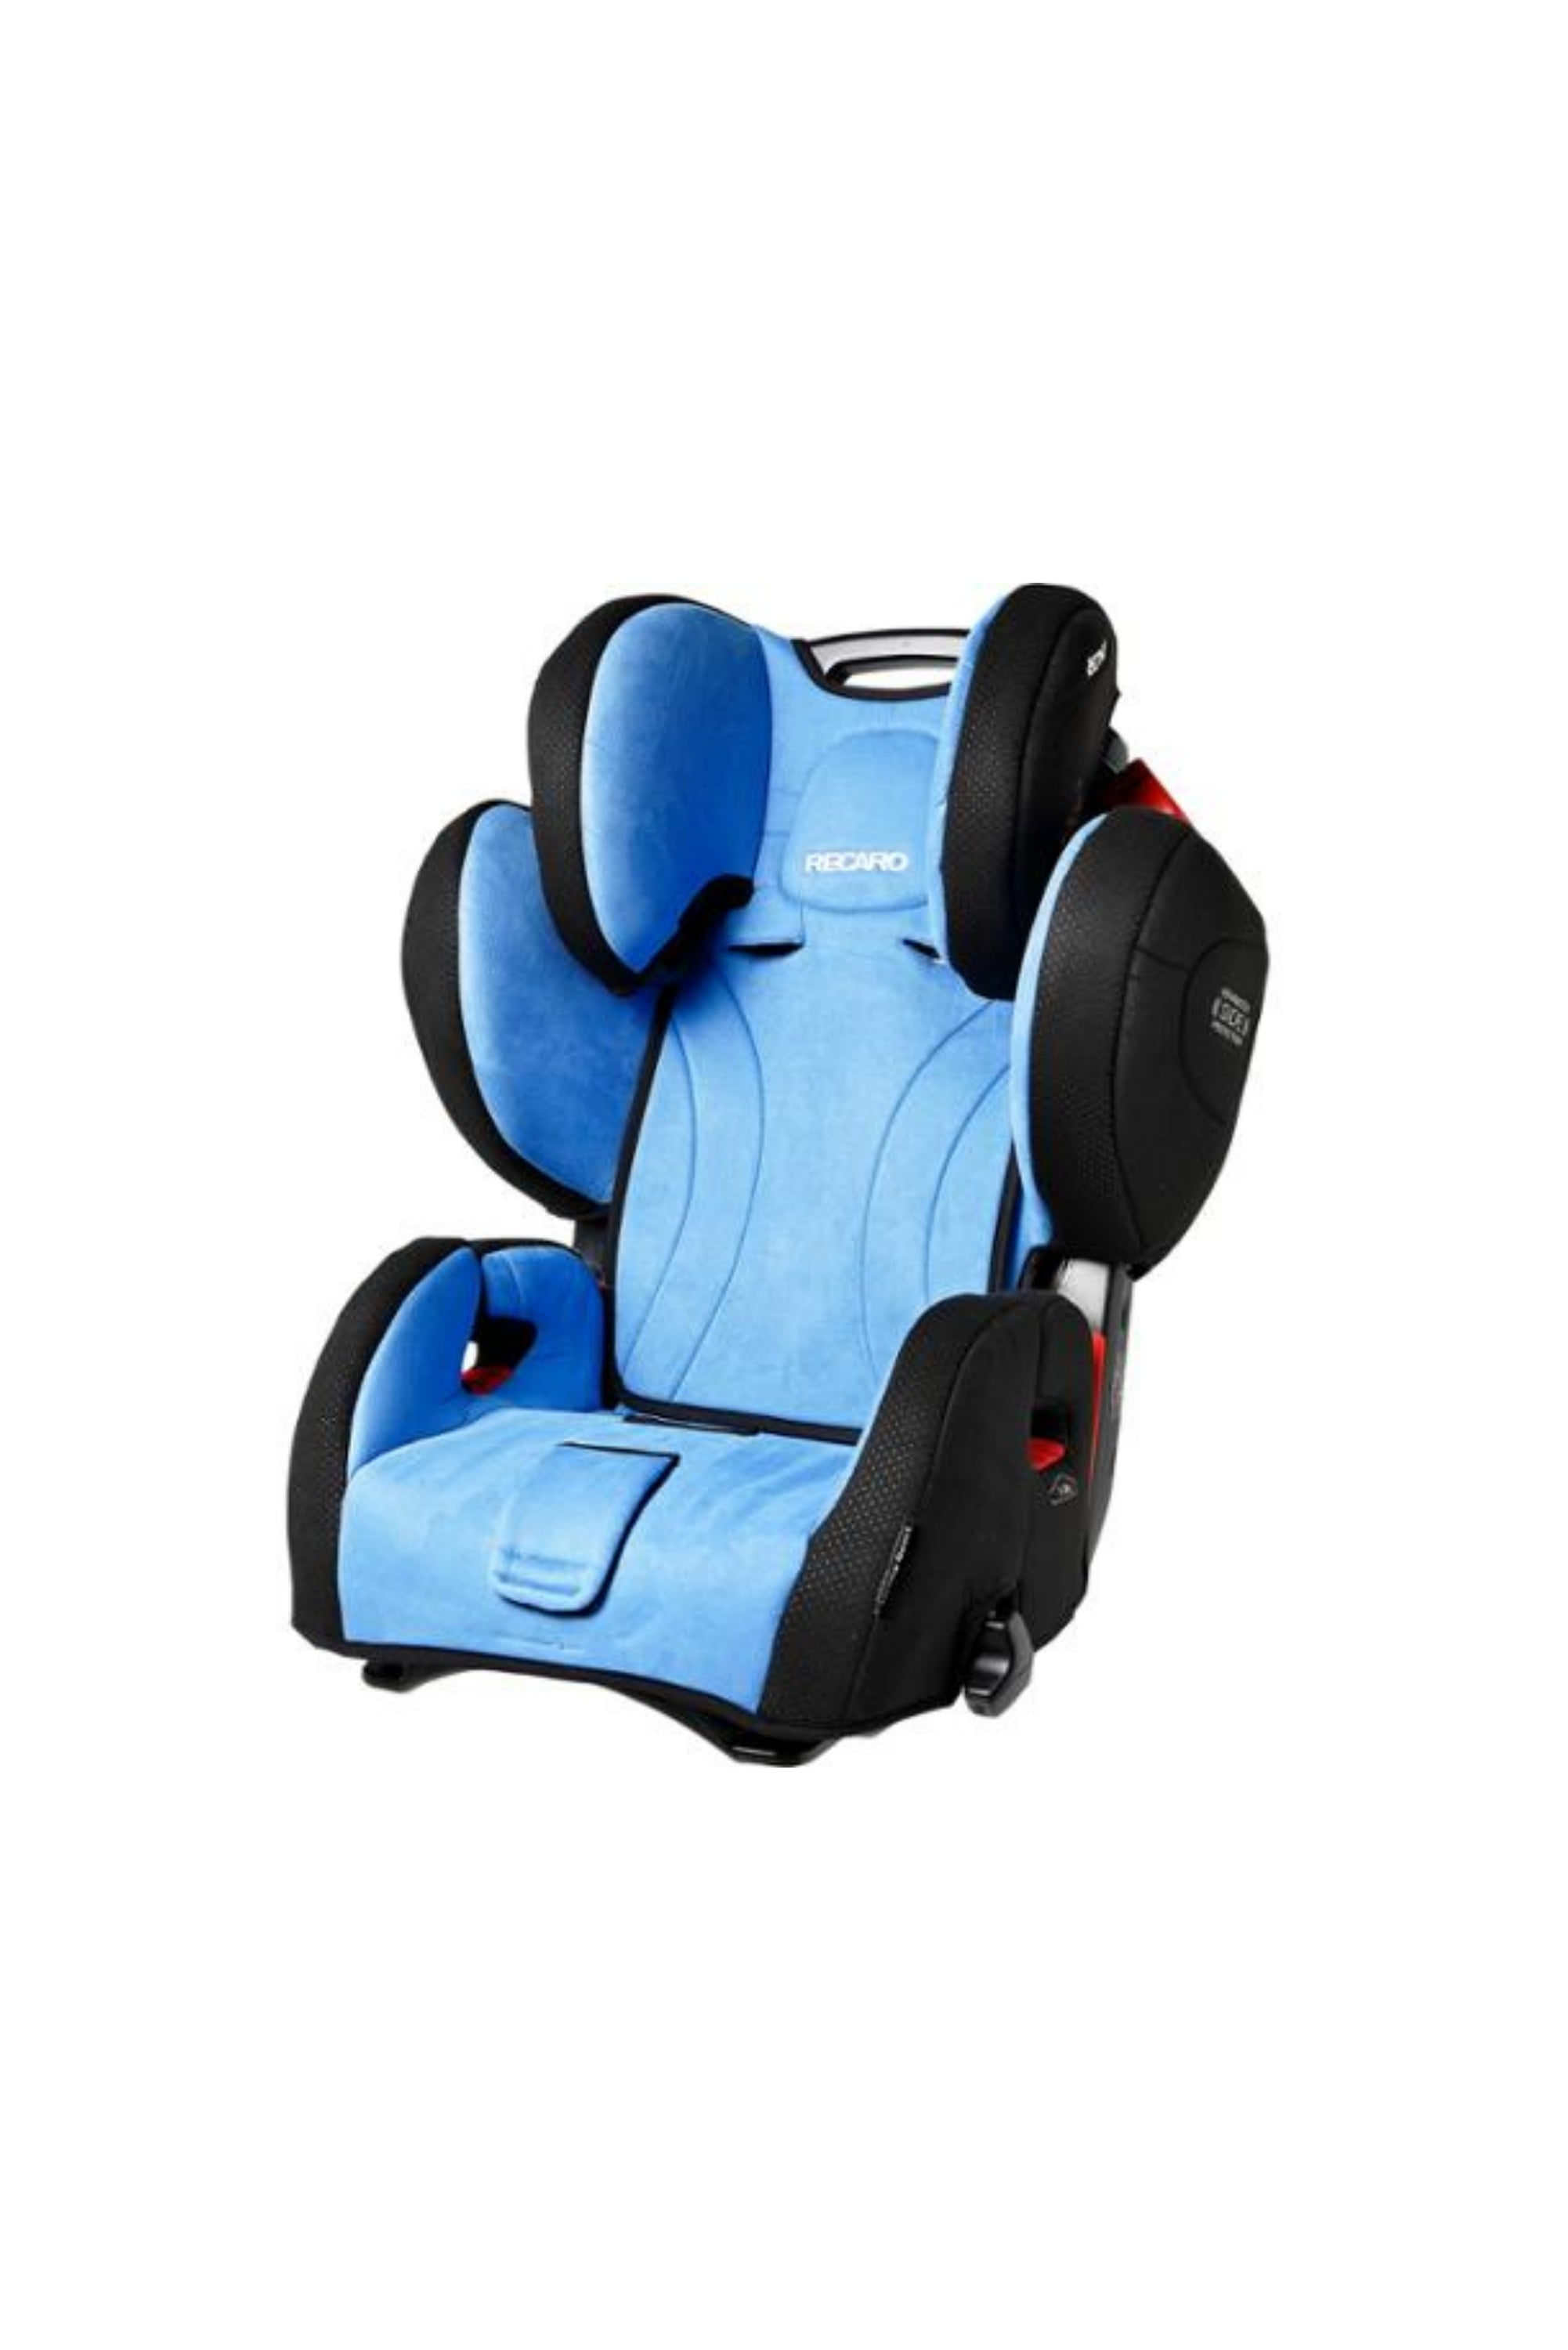 Recaro Young Sport Hero Car Seat 9M-12Y (9-36kg)